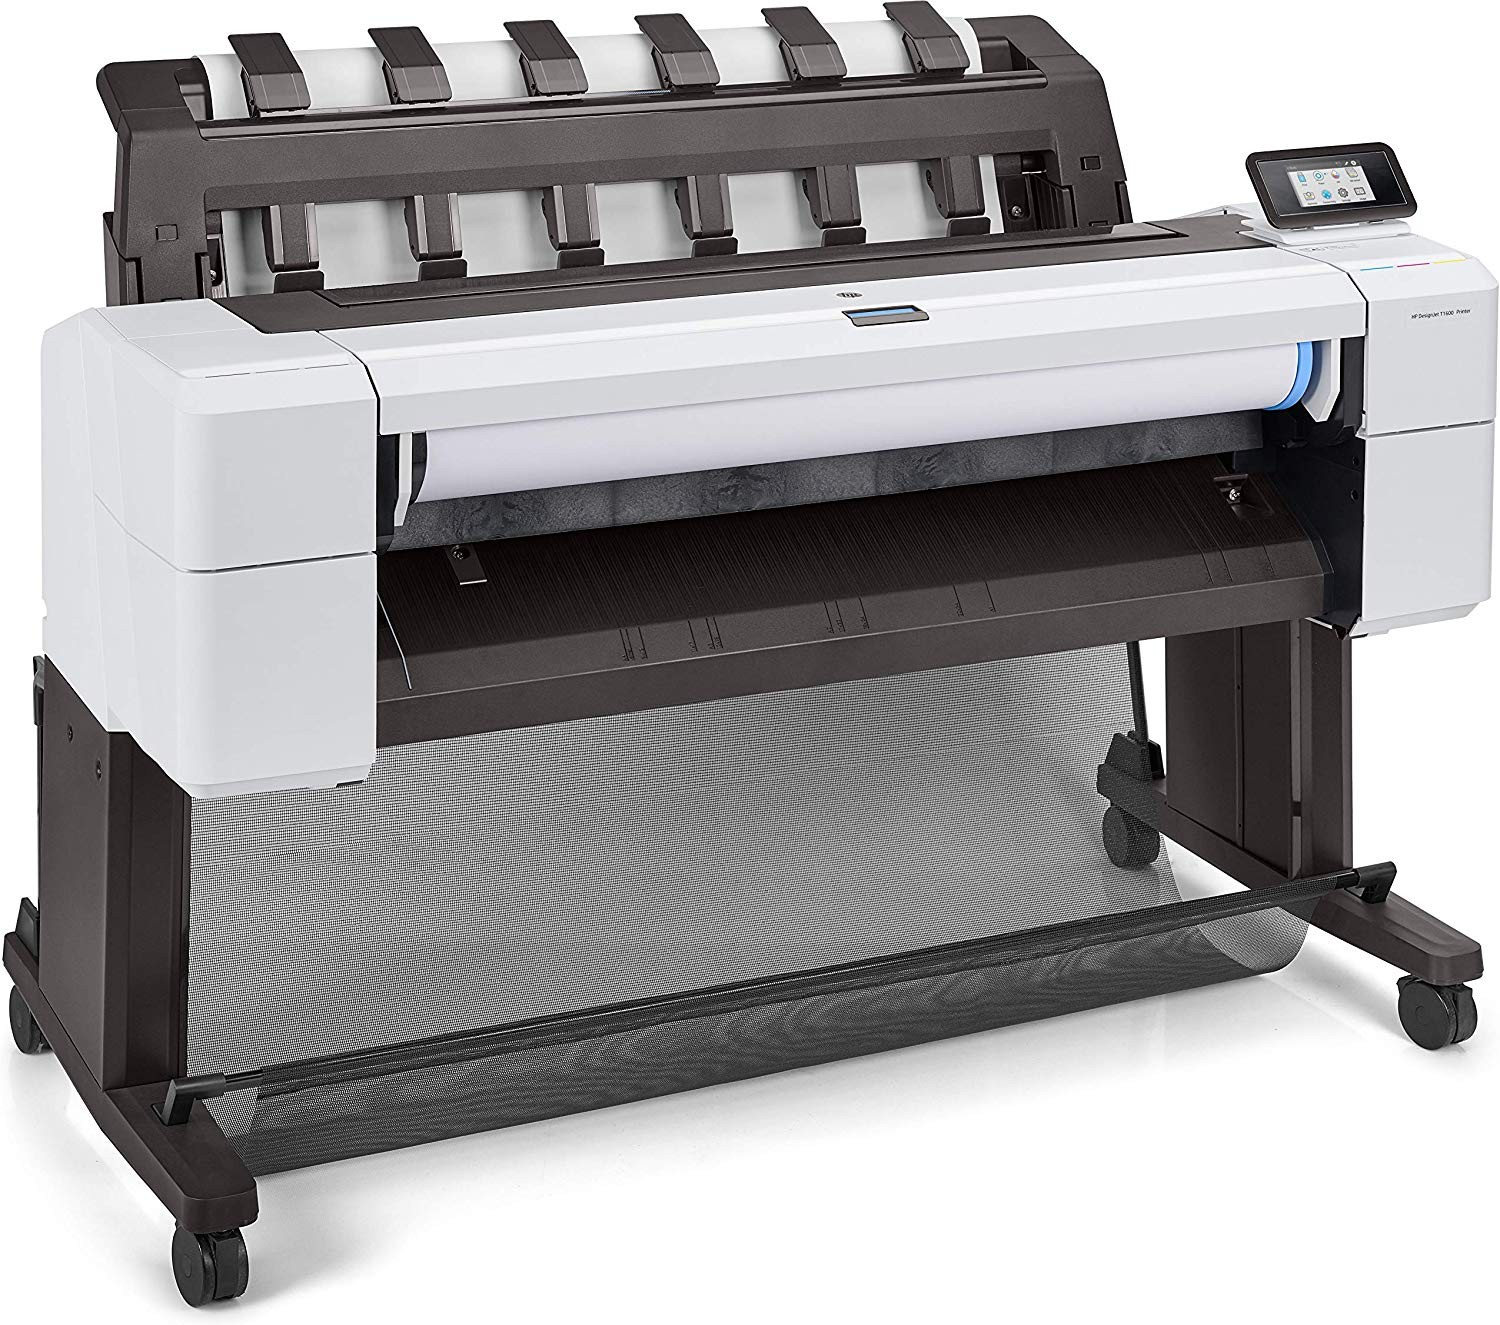 HP DesignJet T1600 36 Color LAN Large Format InkJet Printer 3EK10A#B1K (Unused)